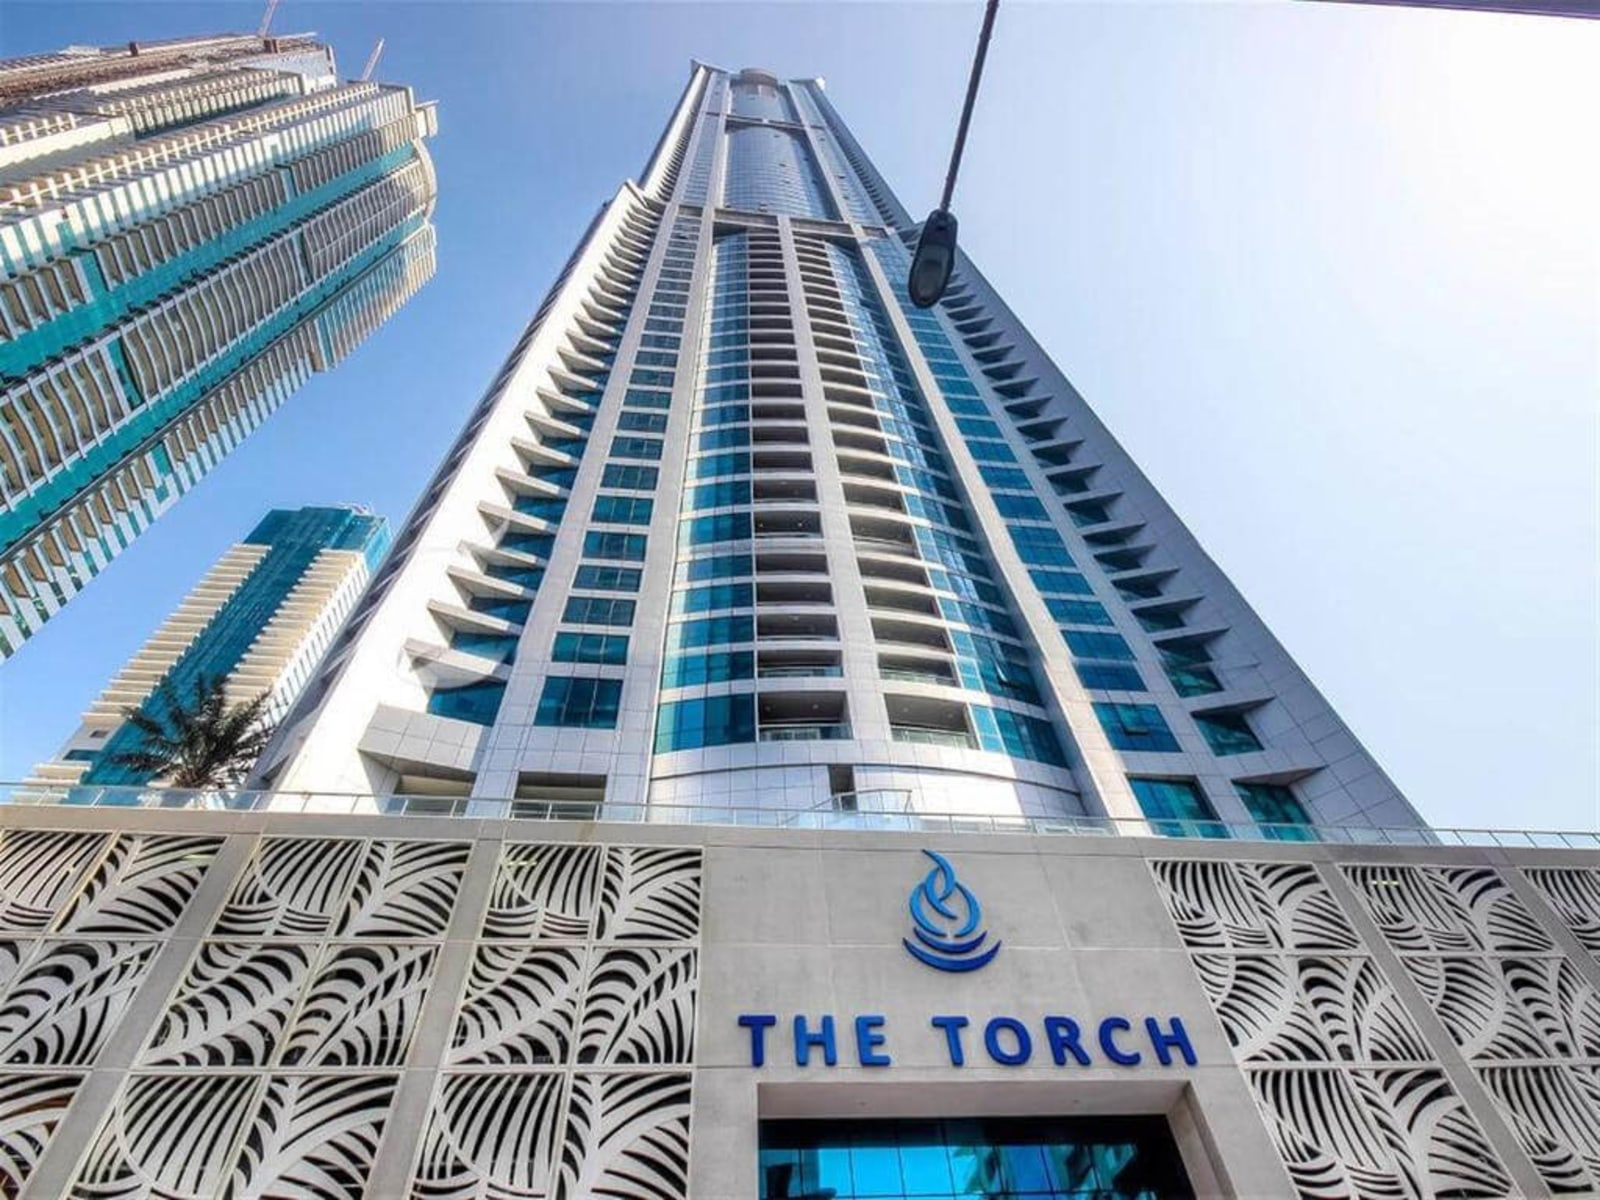 The Torch Tower